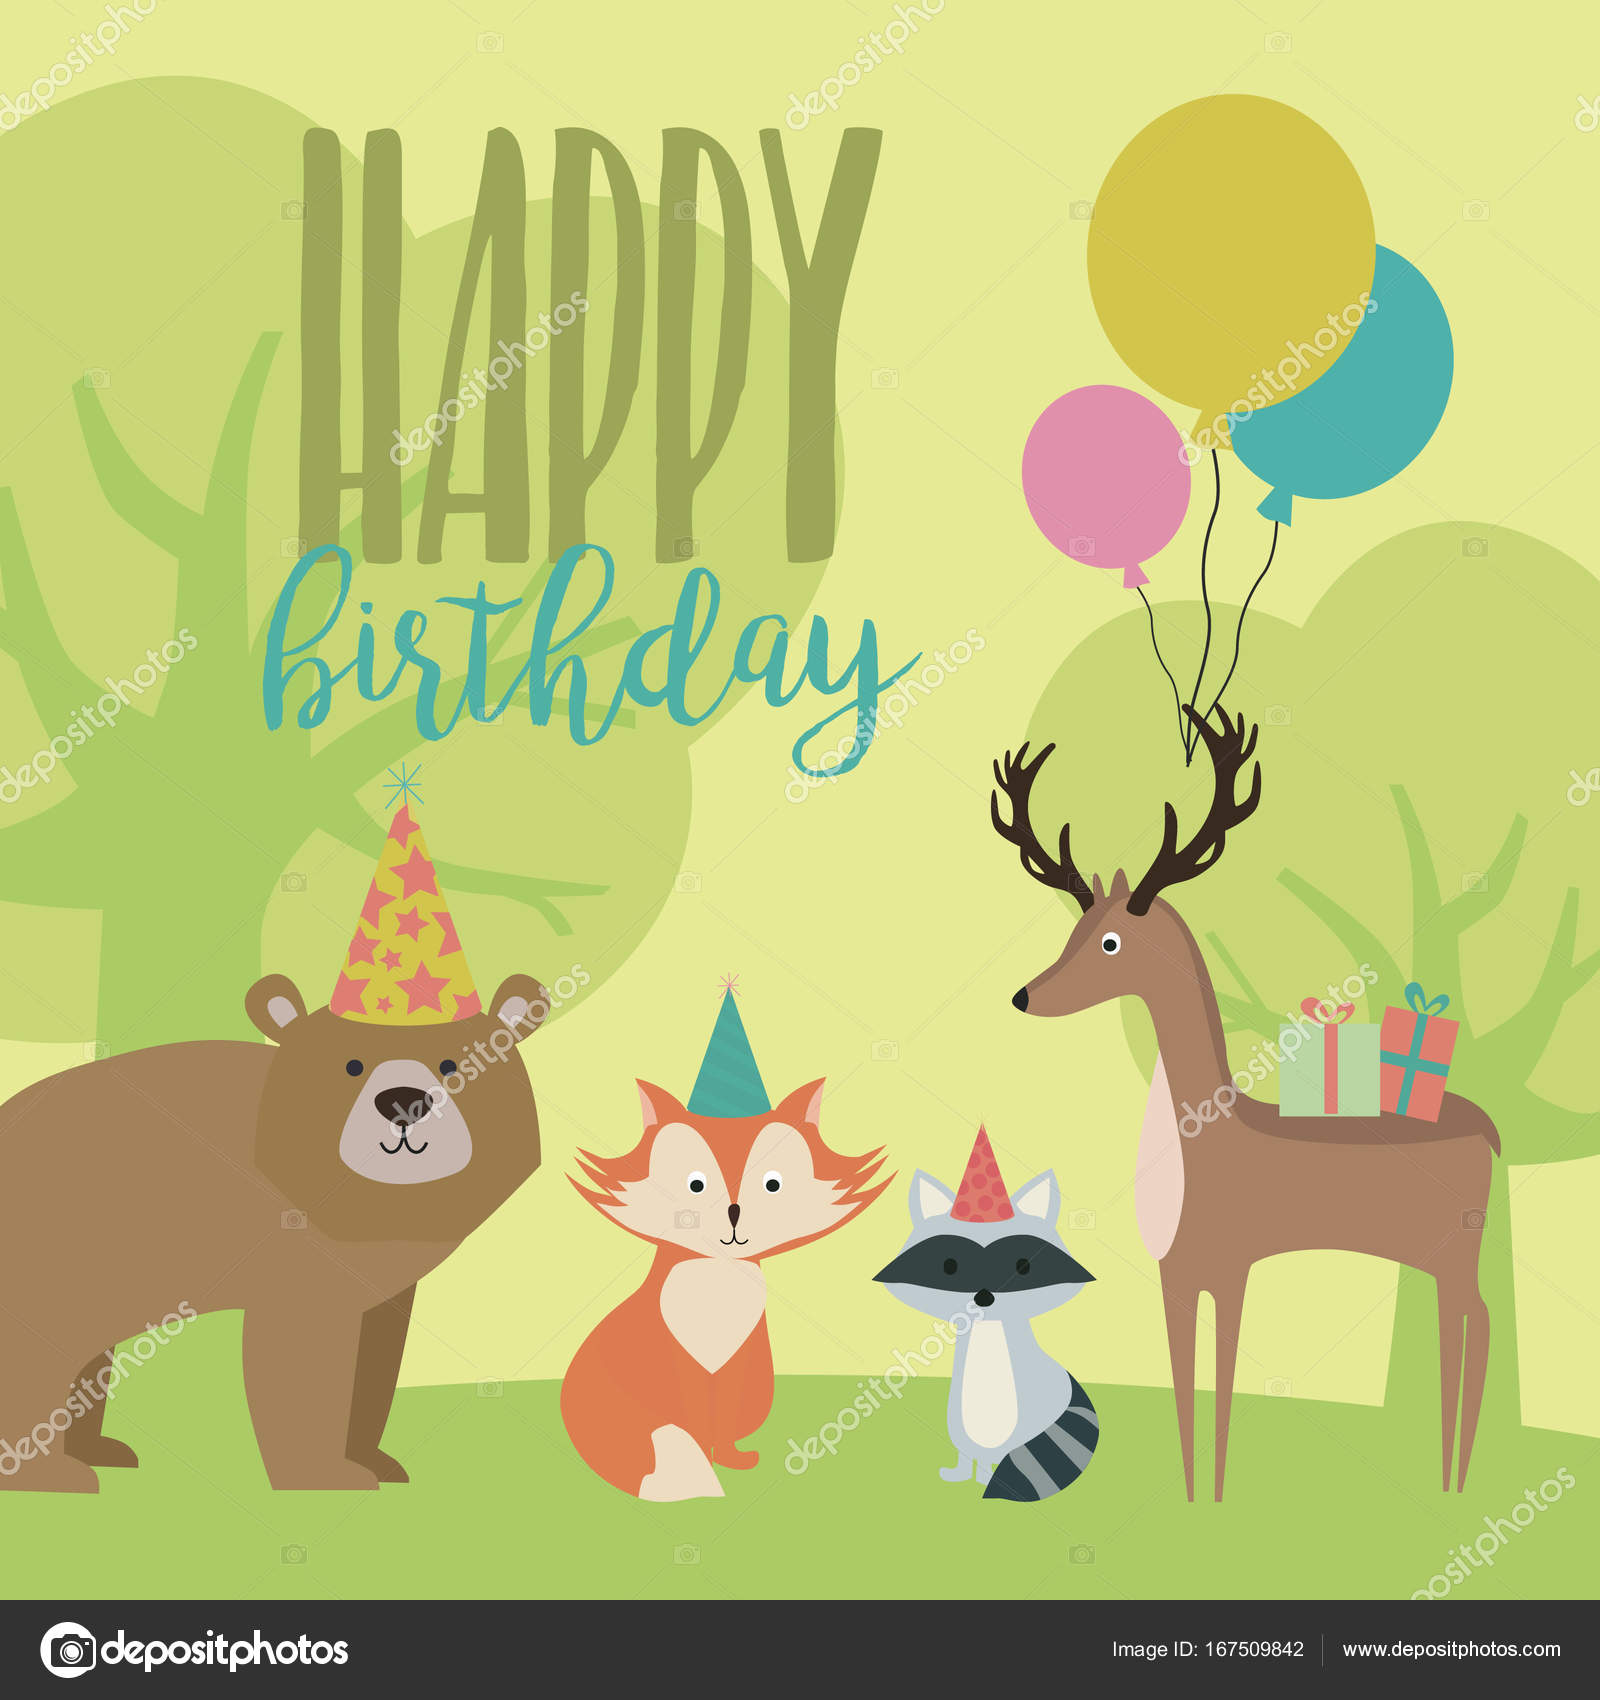 Happy birthday card with forest animals stock vector vissay happy birthday card with forest animals stock vector bookmarktalkfo Choice Image